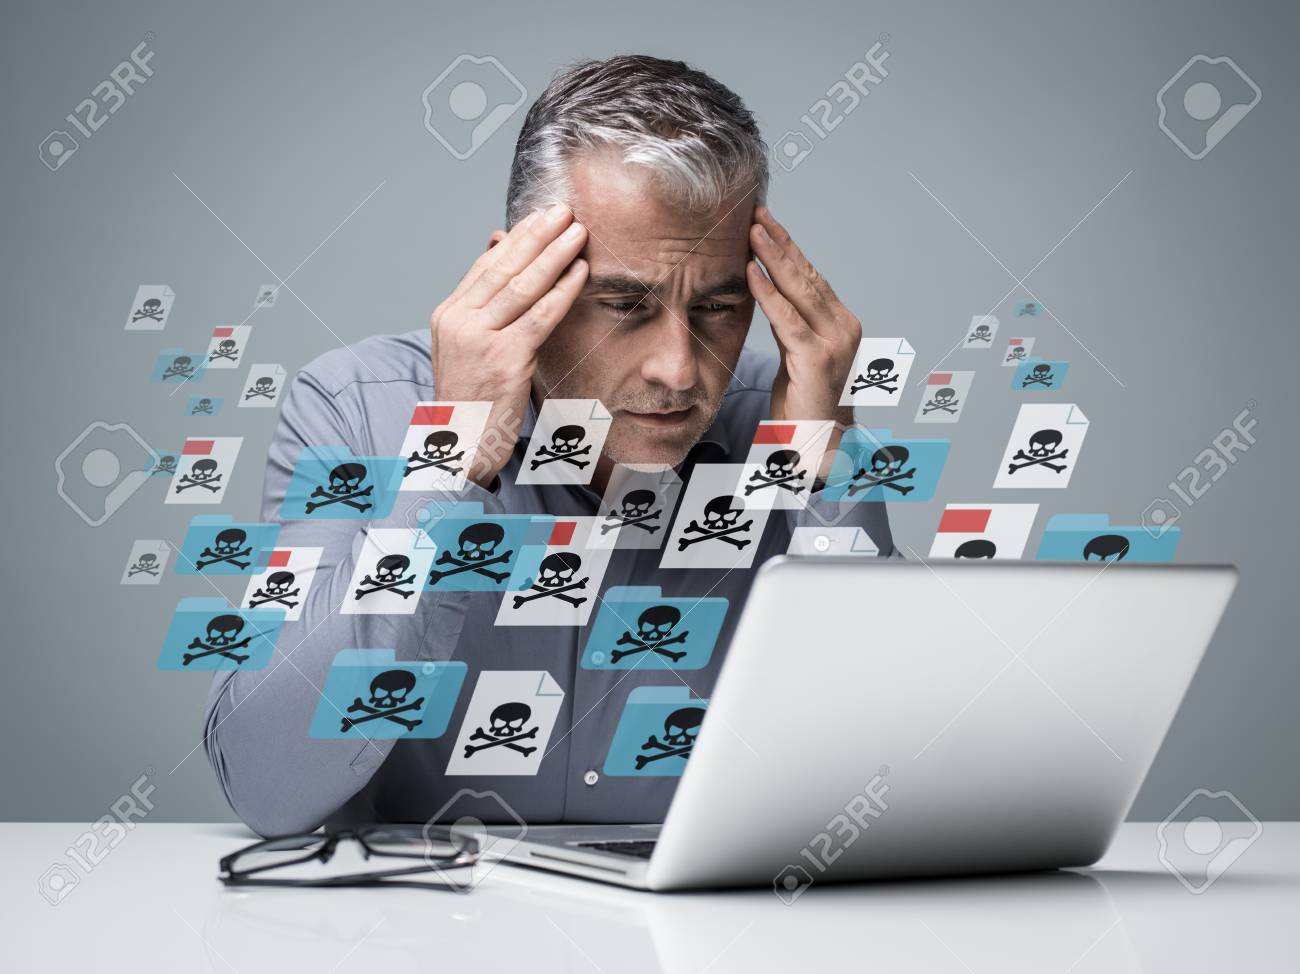 Businessman working with a computer full of viruses, infected files and malwares: he is frustrated with head in hands - 88355487